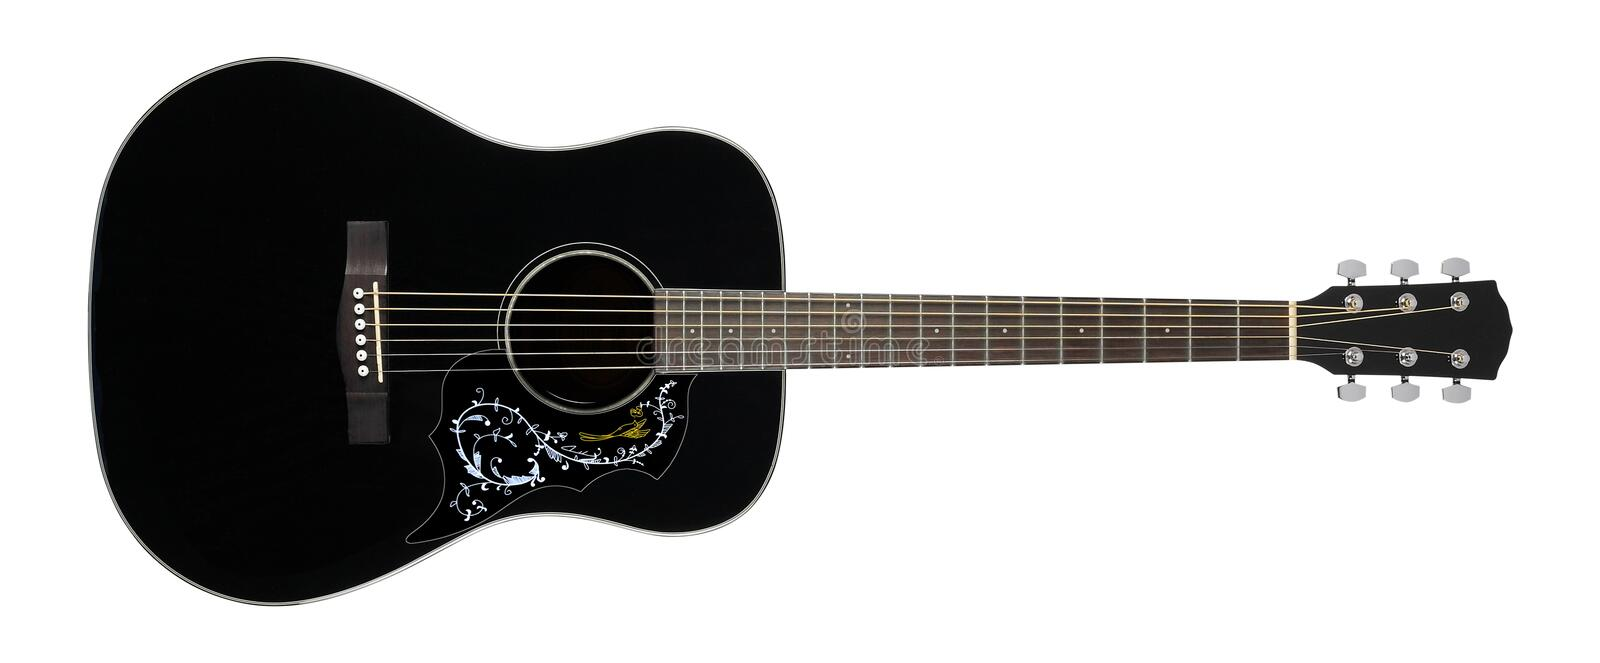 Musical instrument - Black acoustic guitar country flower bird p. Ickguard on a white background royalty free stock photos